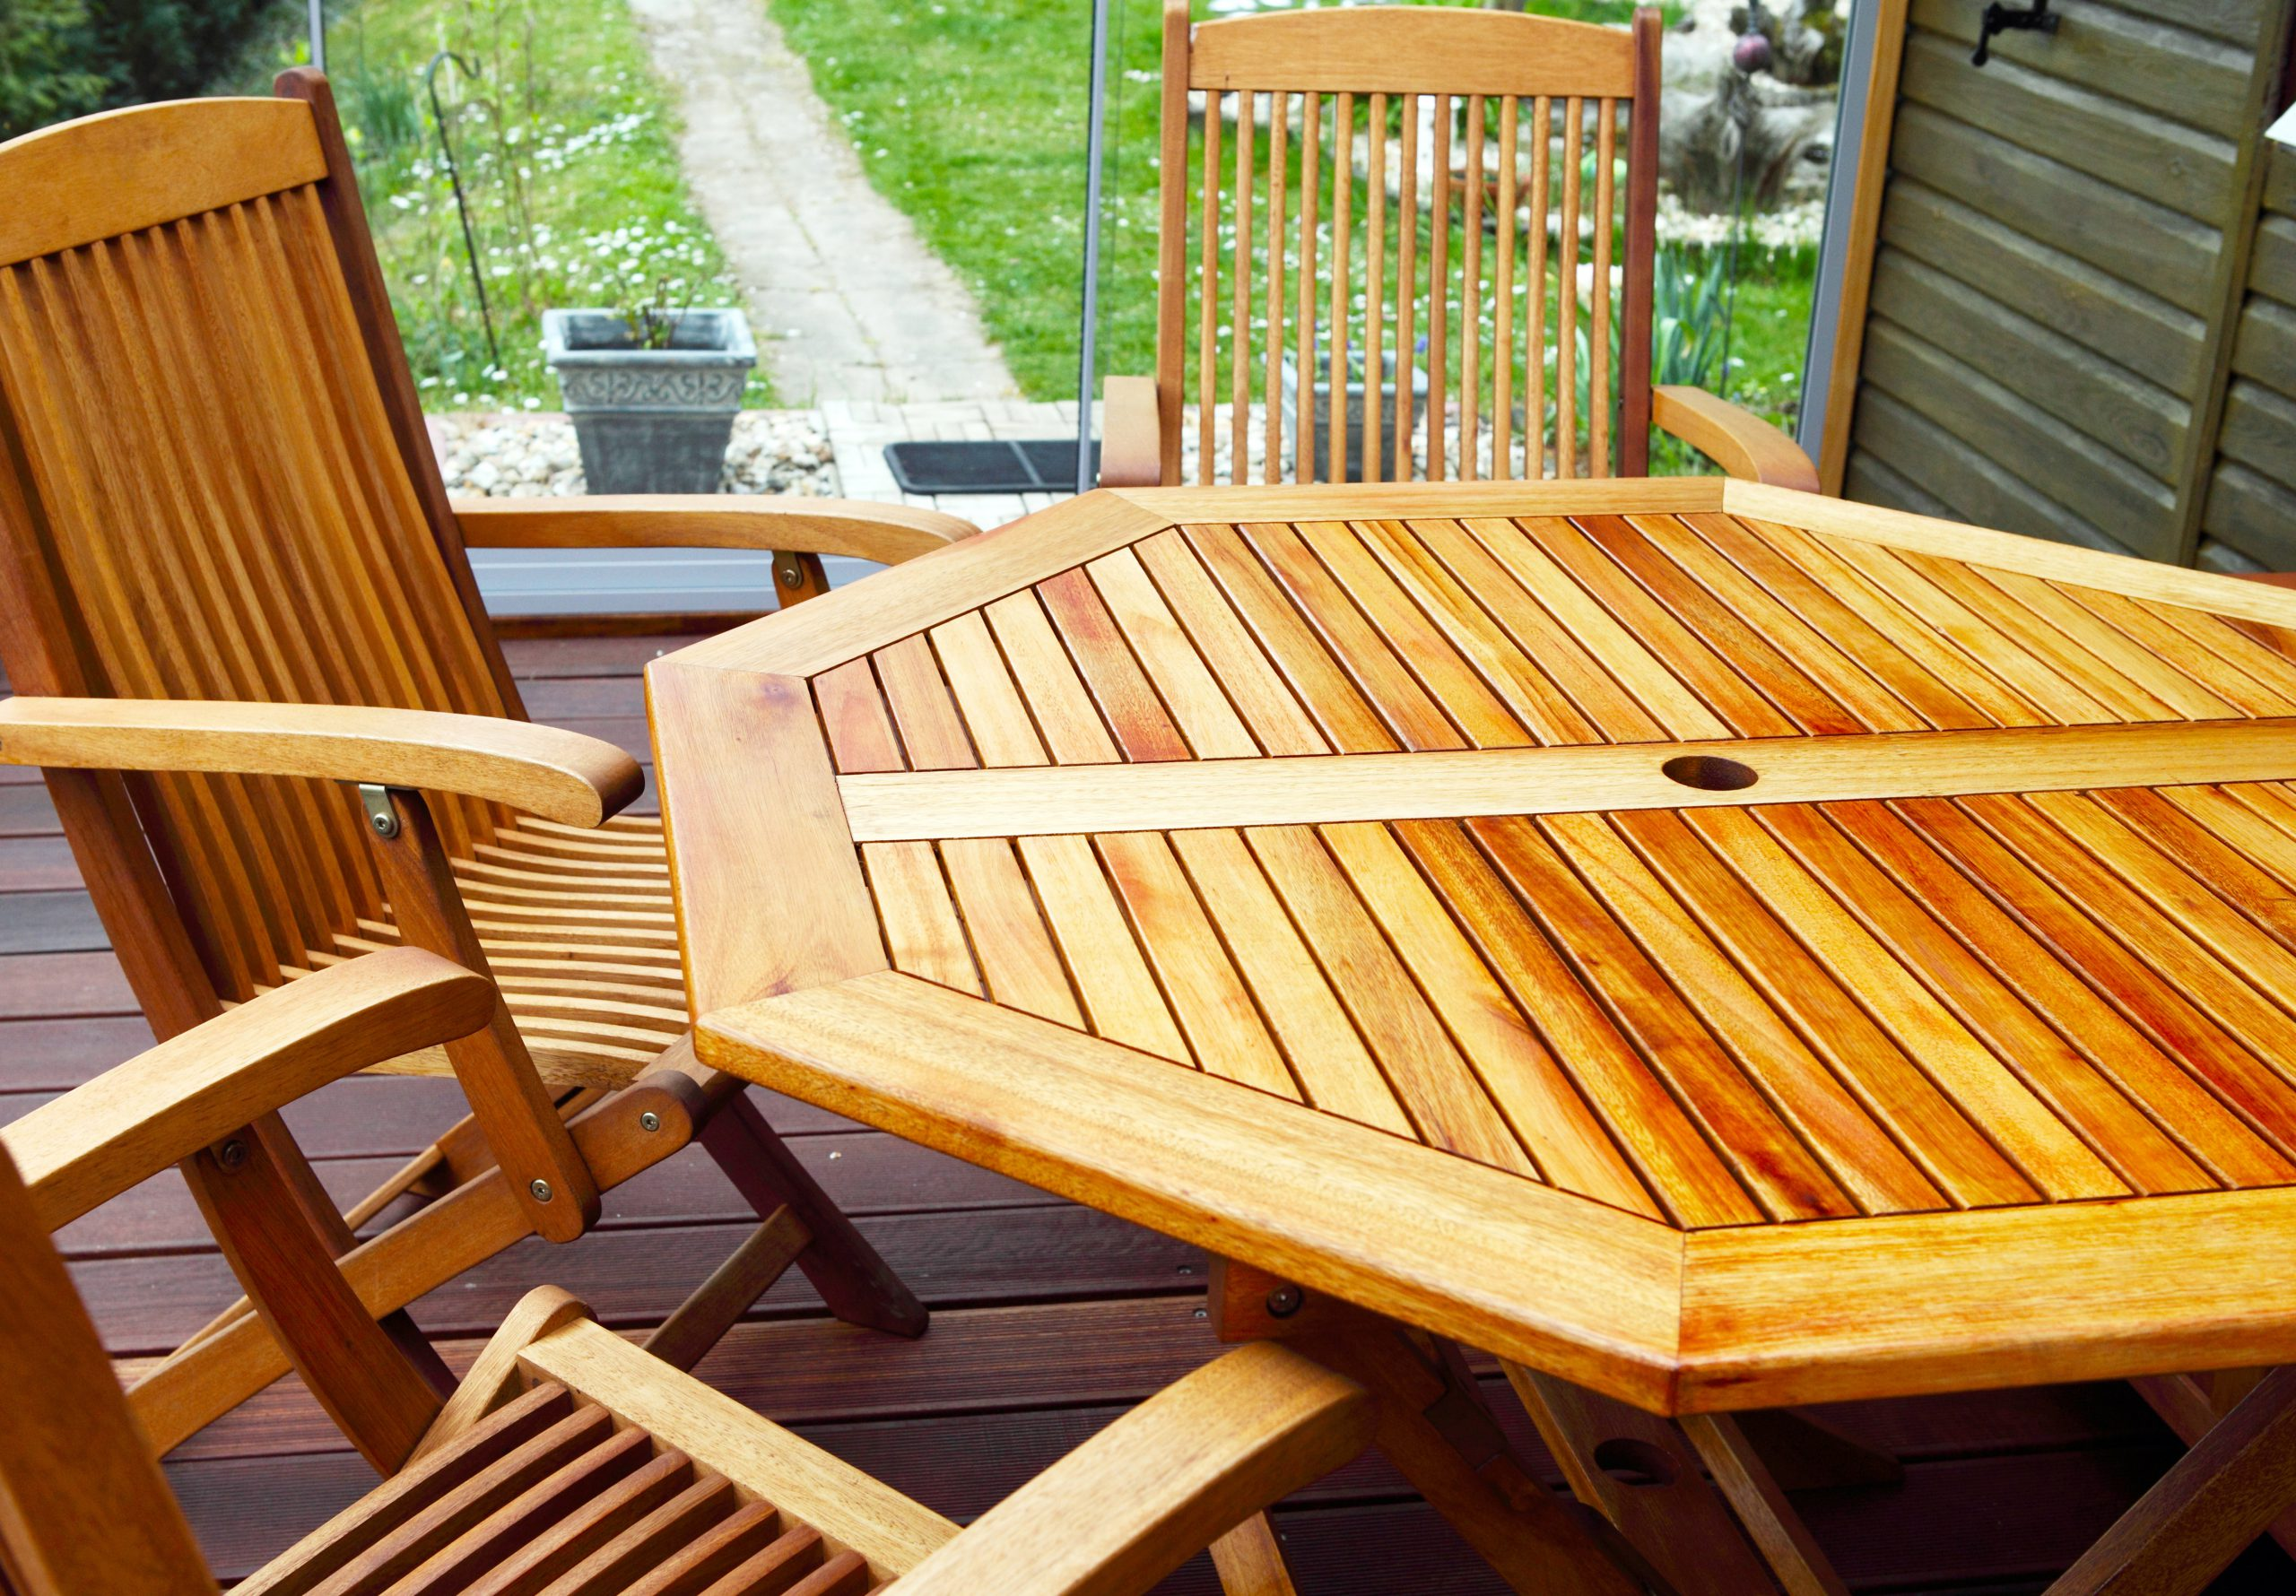 Tips for Finding High Quality Teak Patio Furniture